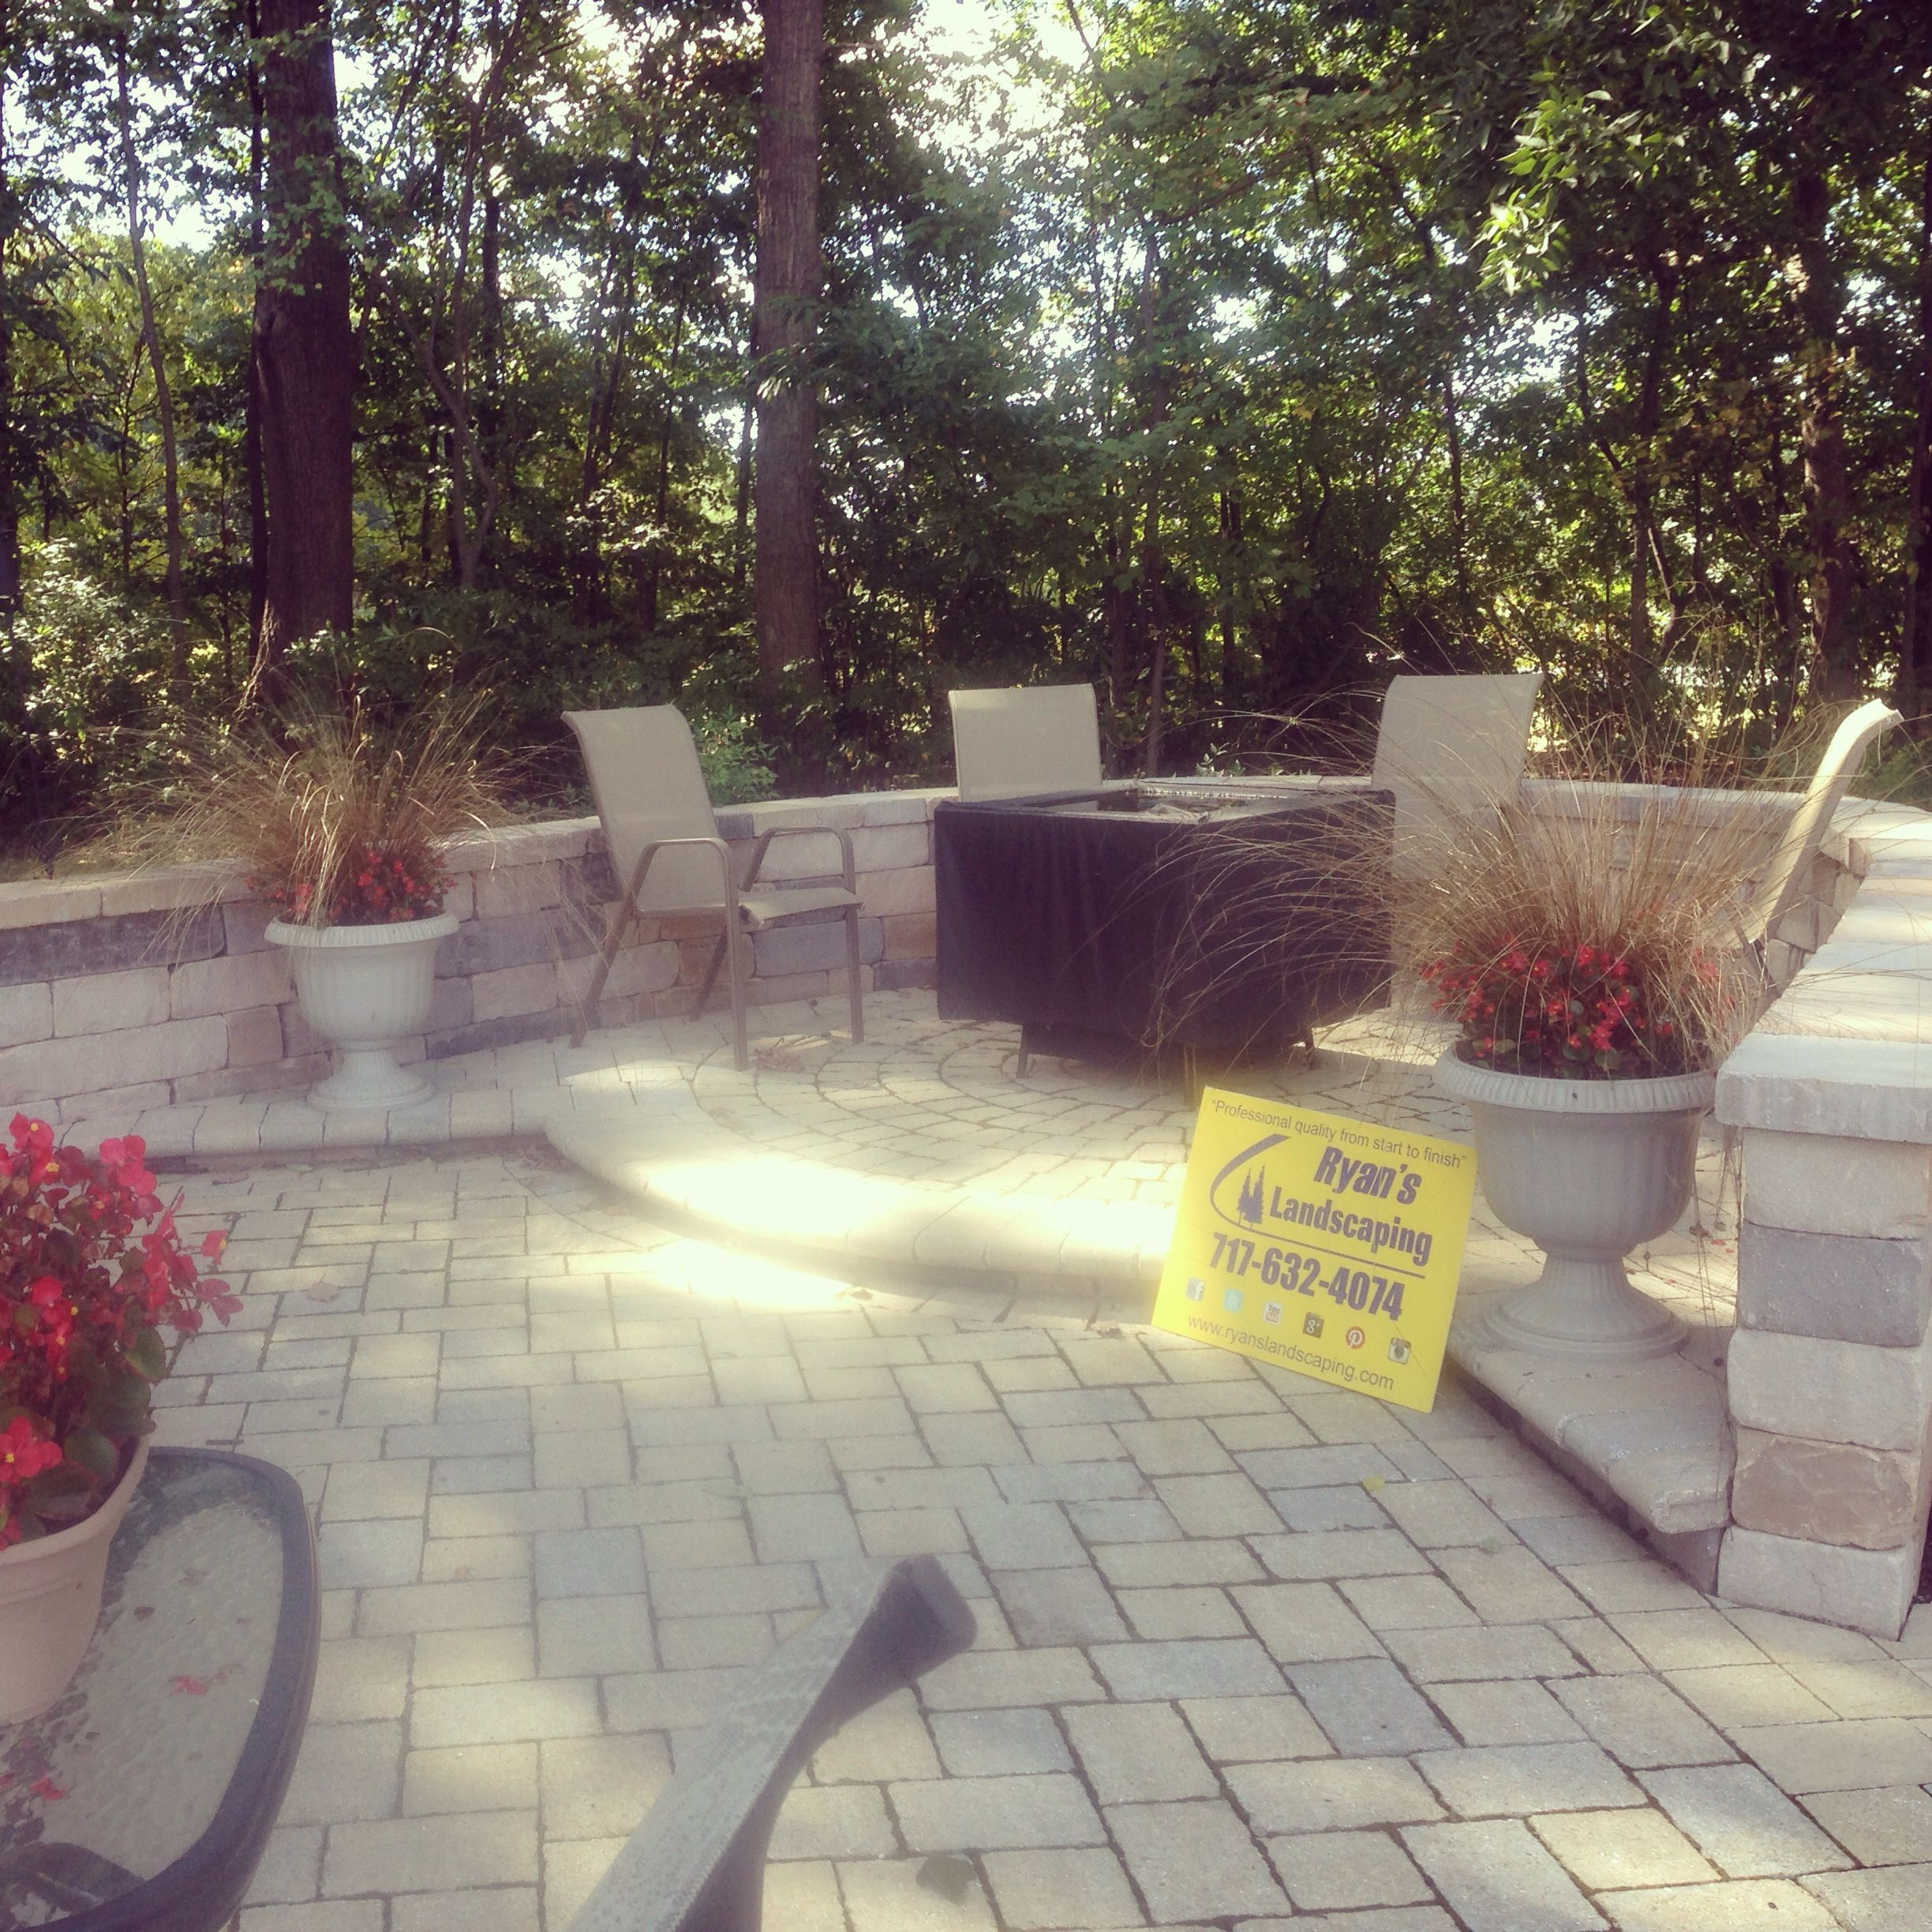 Relaxing patio area with fire pit and retaining wall we installed a year ago... Ryan's Landscaping